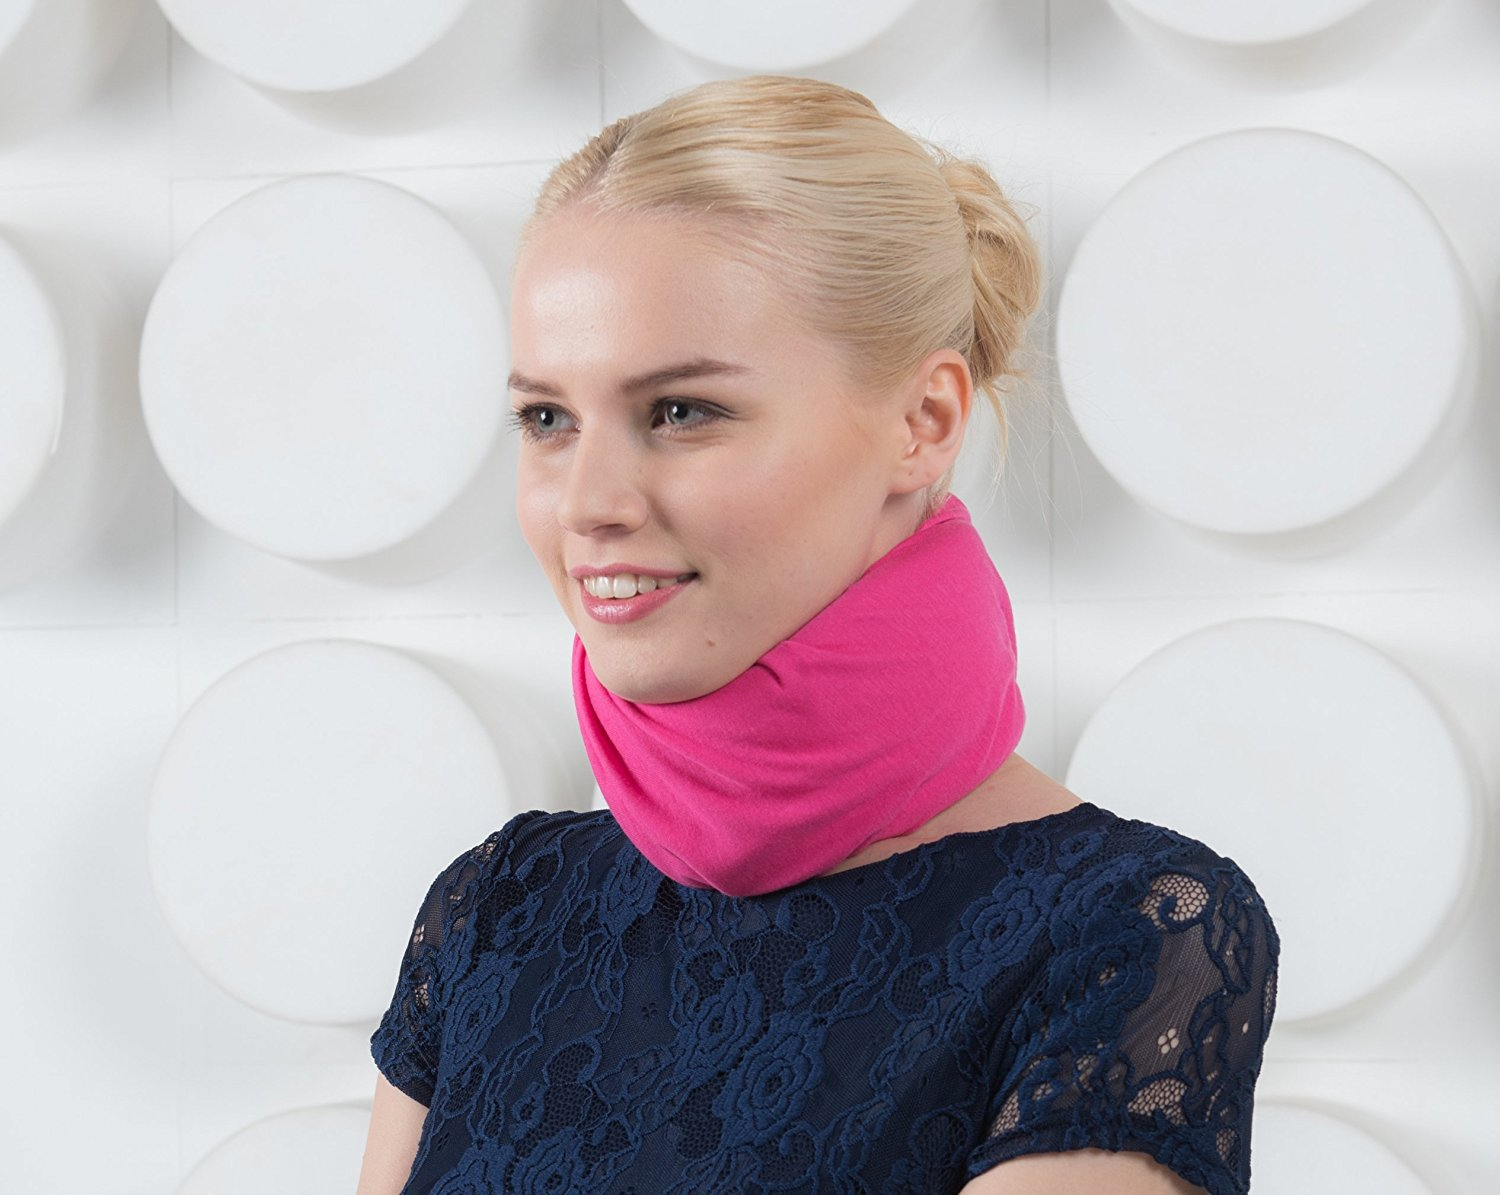 Snood rose/fuchsia pour collier cervical